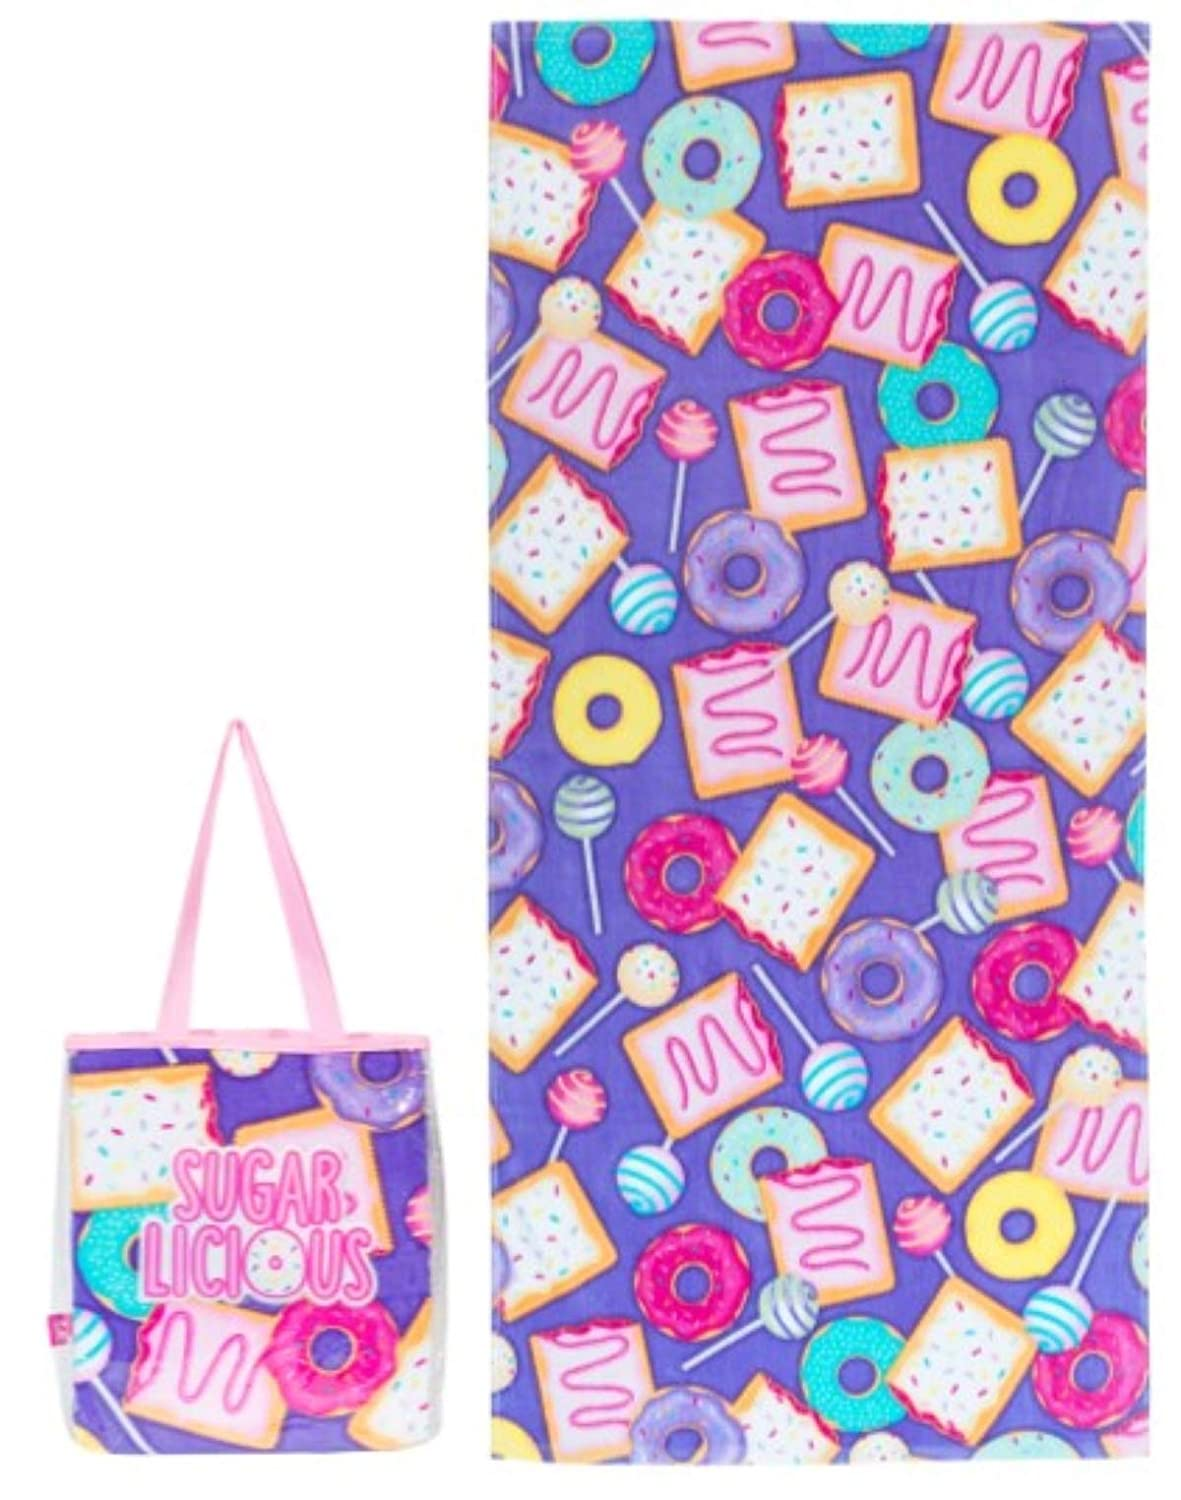 Girls Deluxe Cotton Terry Velour Beach Towel and Waterproof Tote Bag Set Sugarlicious Design